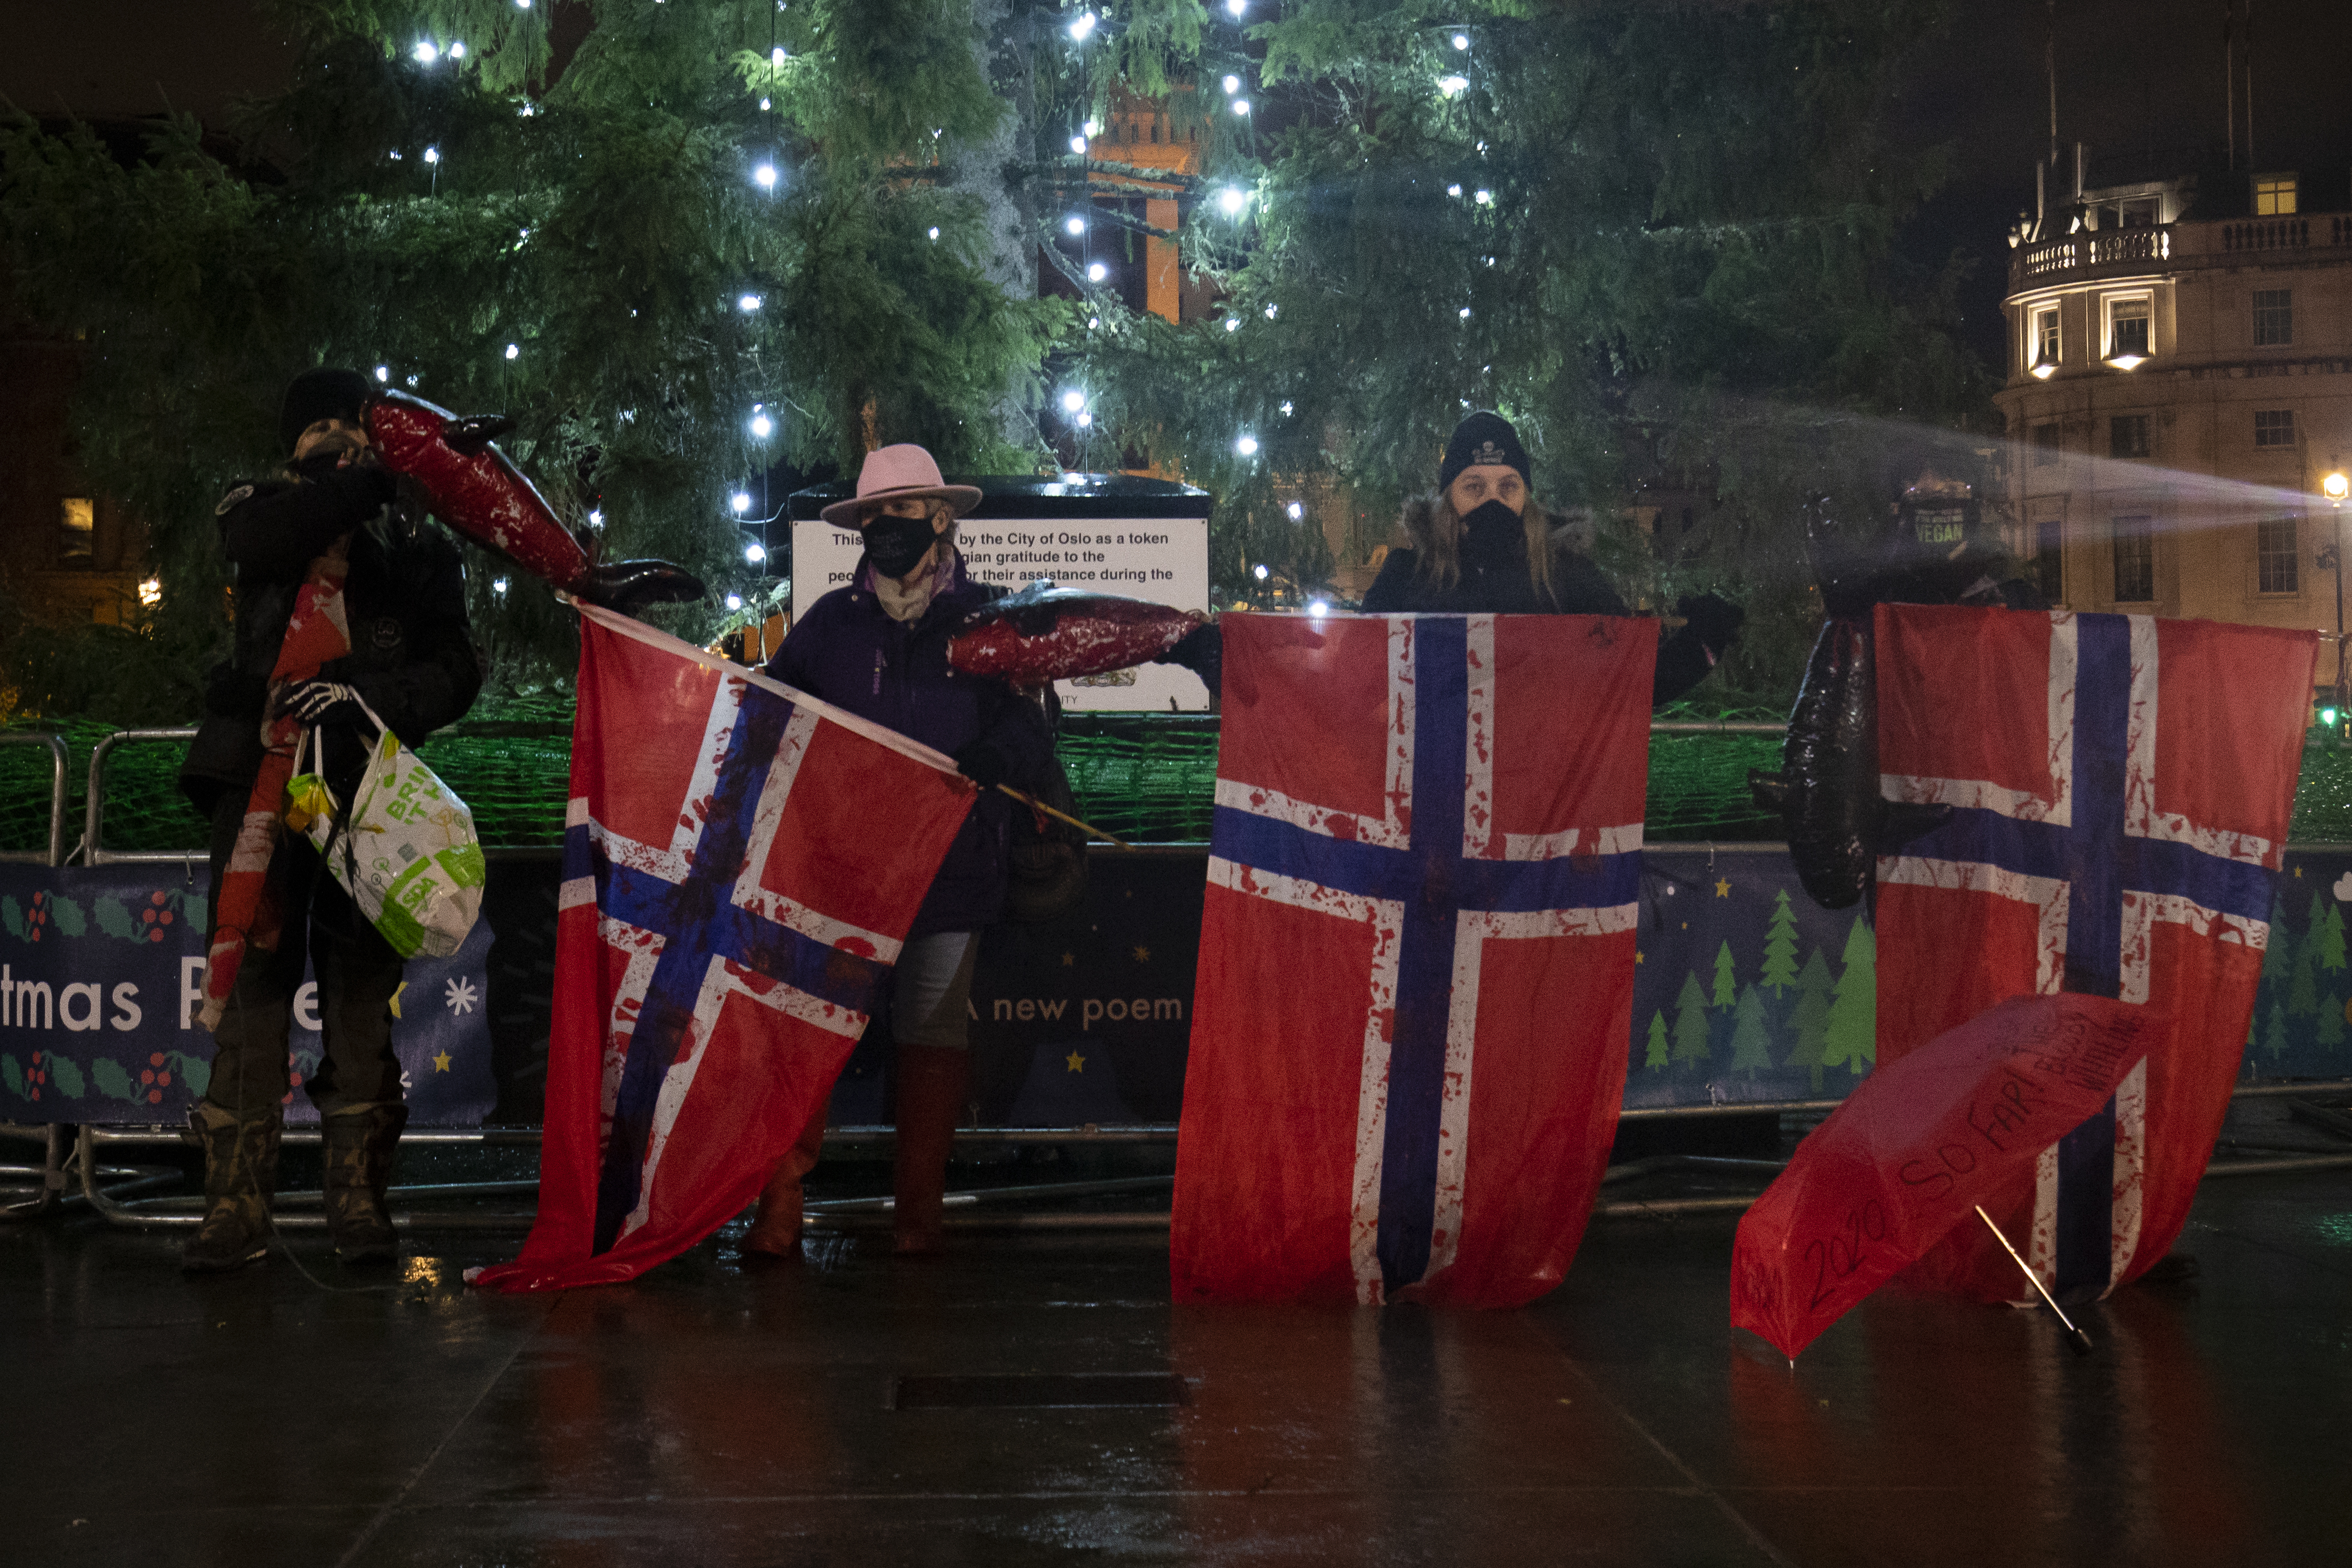 People protesting against Norway's whaling industry stand in front of the Christmas Tree in Trafalgar Square, London. The tree is an annual gift to Britain from Norway given as a symbol of friendship and co-operation between the two countries. (Photo by Aaron Chown/PA Images via Getty Images)